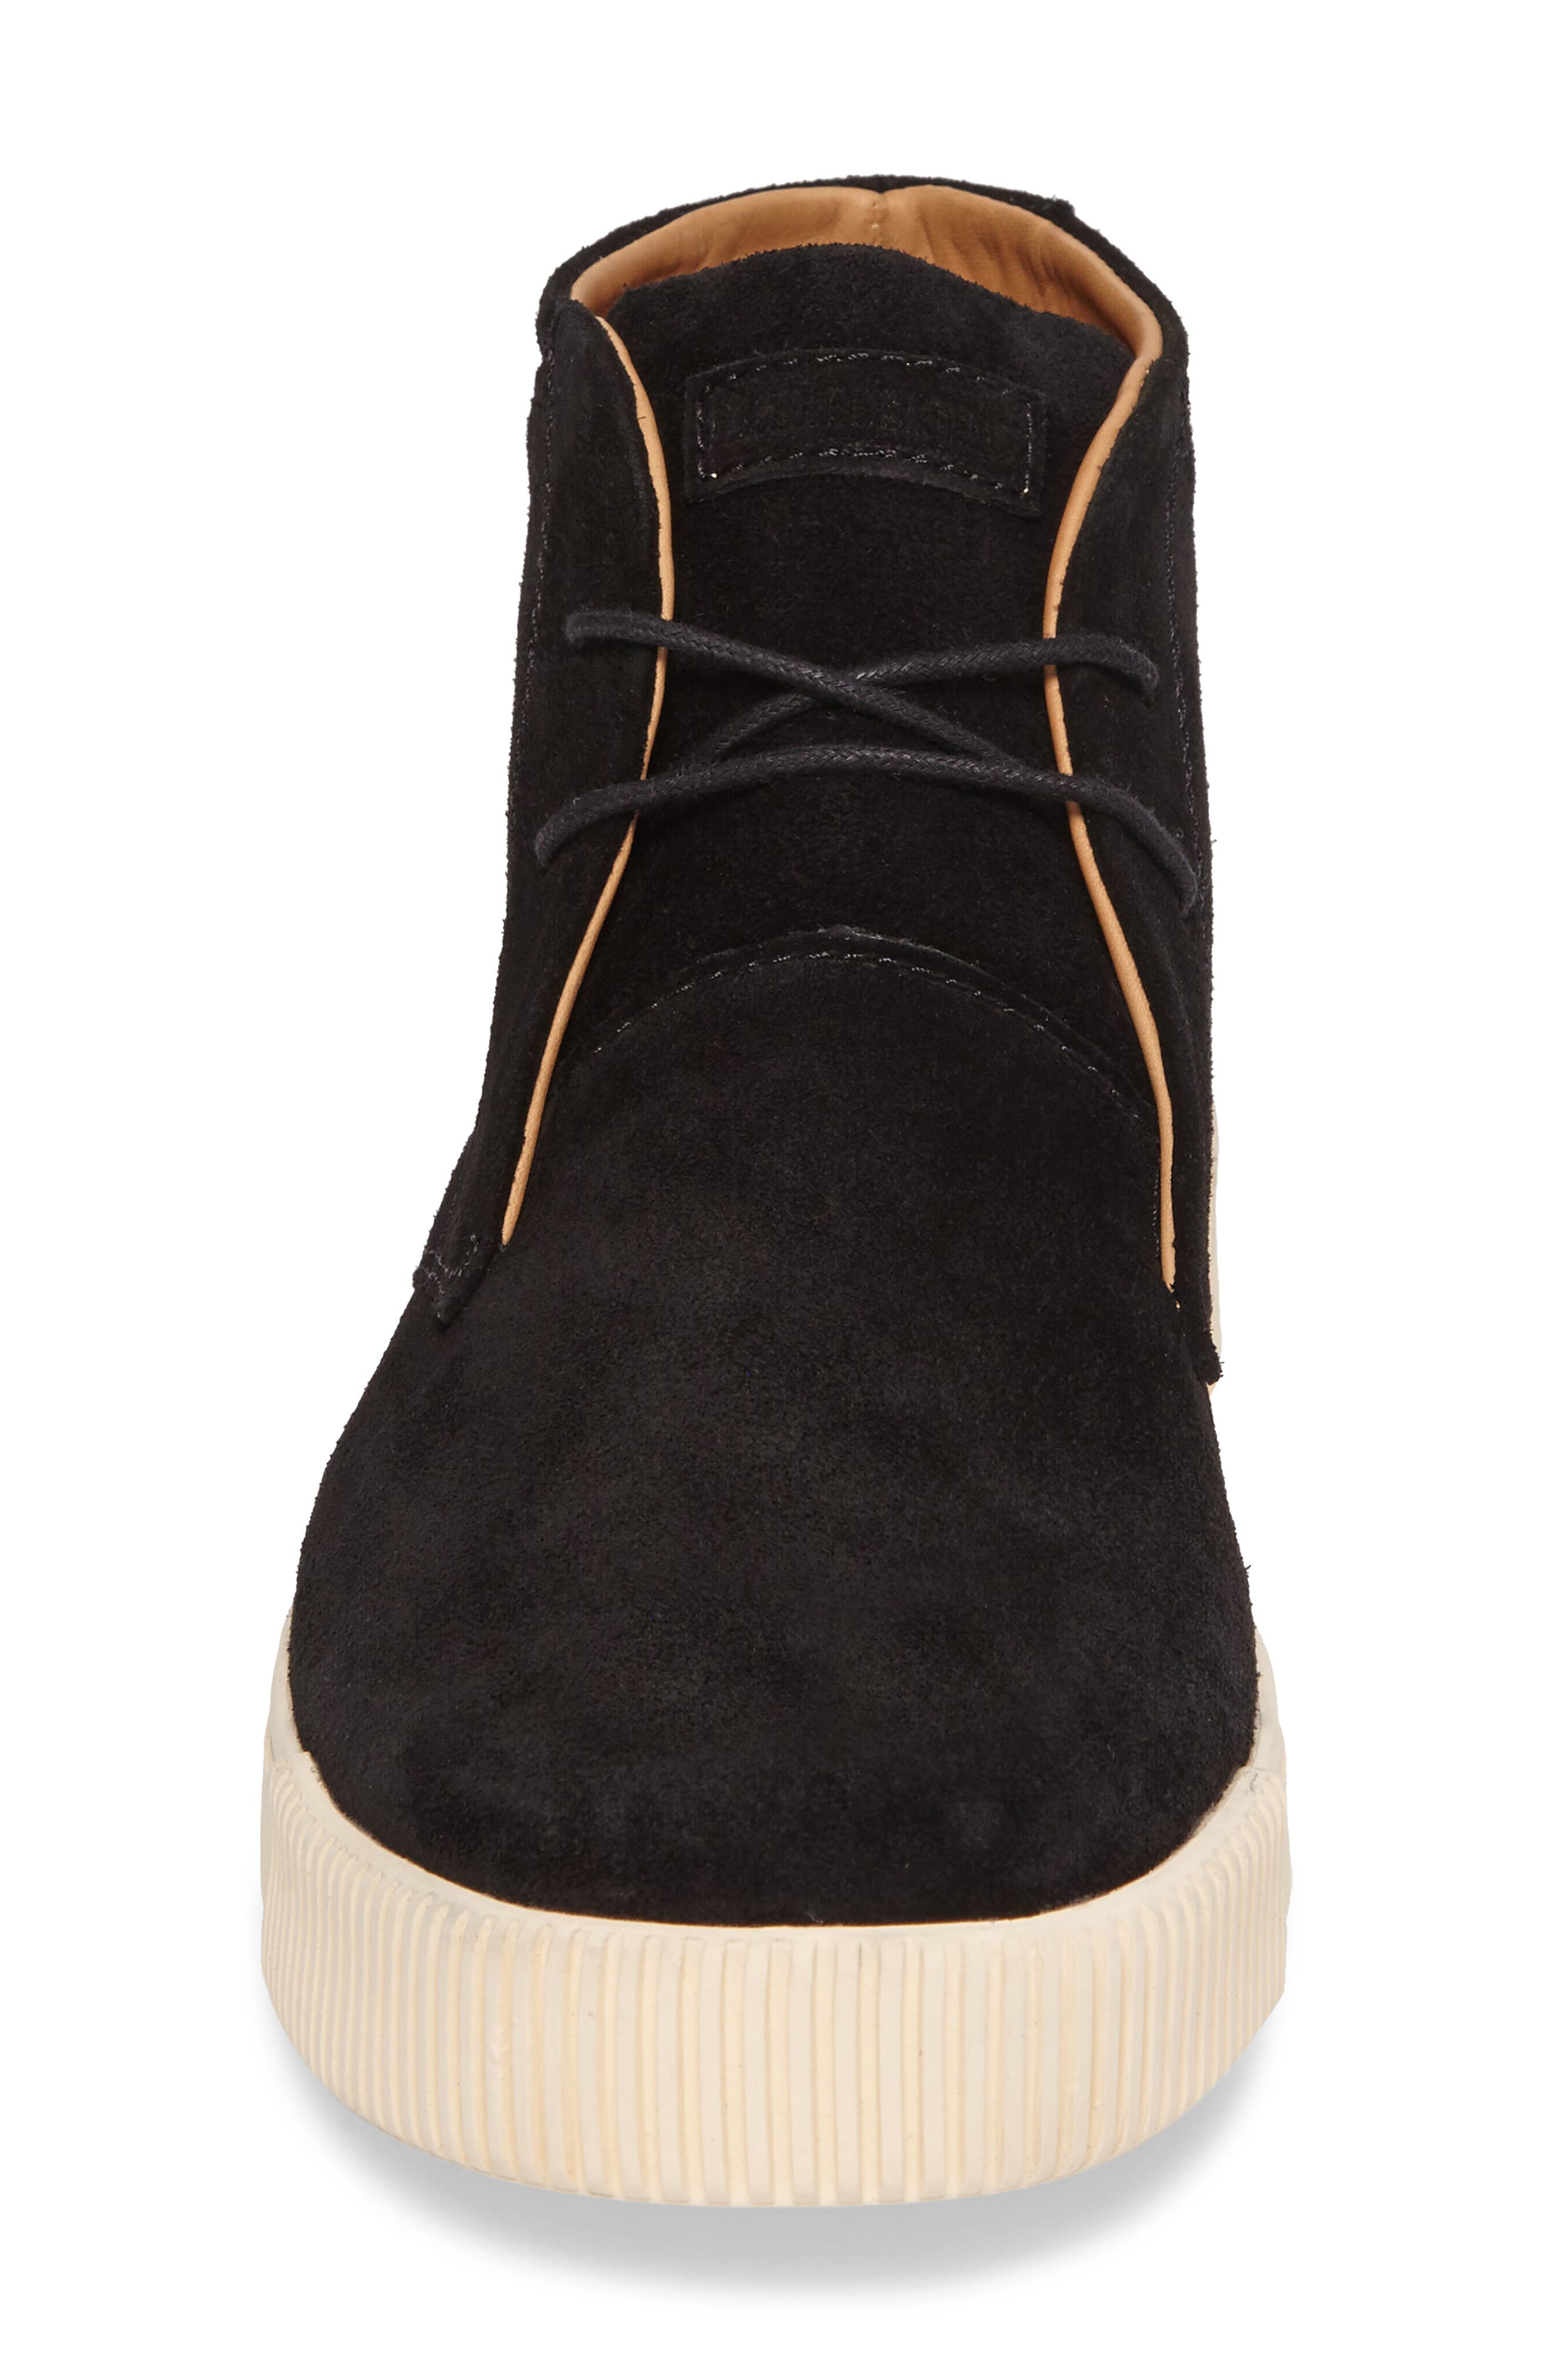 Lyons Chukka Sneaker,                             Alternate thumbnail 4, color,                             BLACK SUEDE